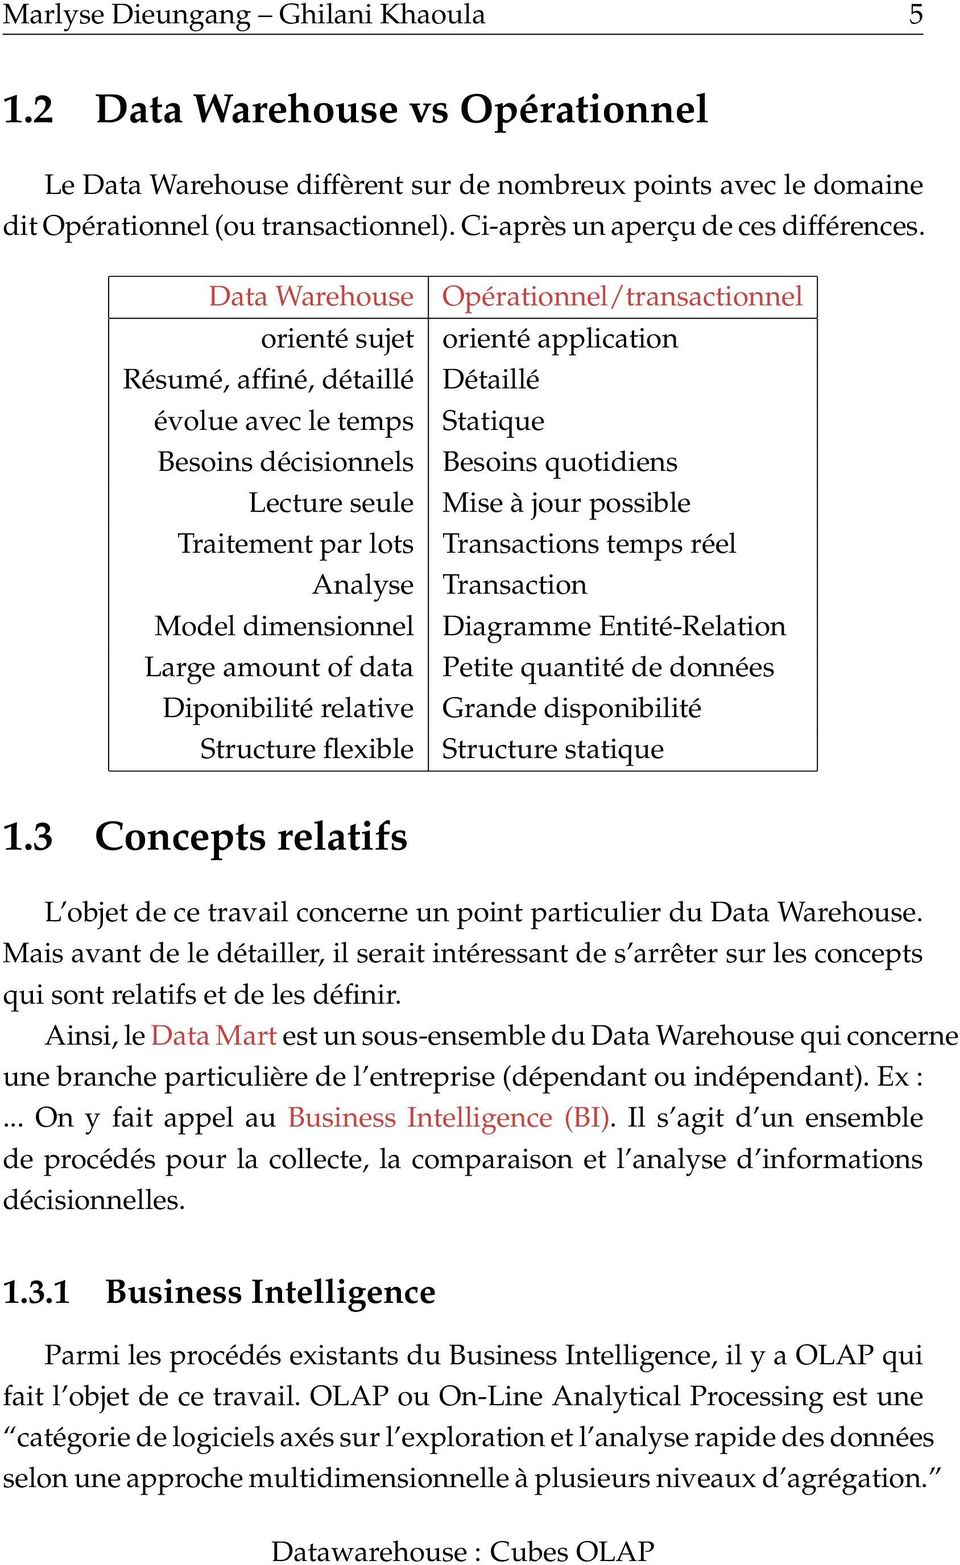 Data Warehouse orienté sujet Résumé, affiné, détaillé évolue avec le temps Besoins décisionnels Lecture seule Traitement par lots Analyse Model dimensionnel Large amount of data Diponibilité relative